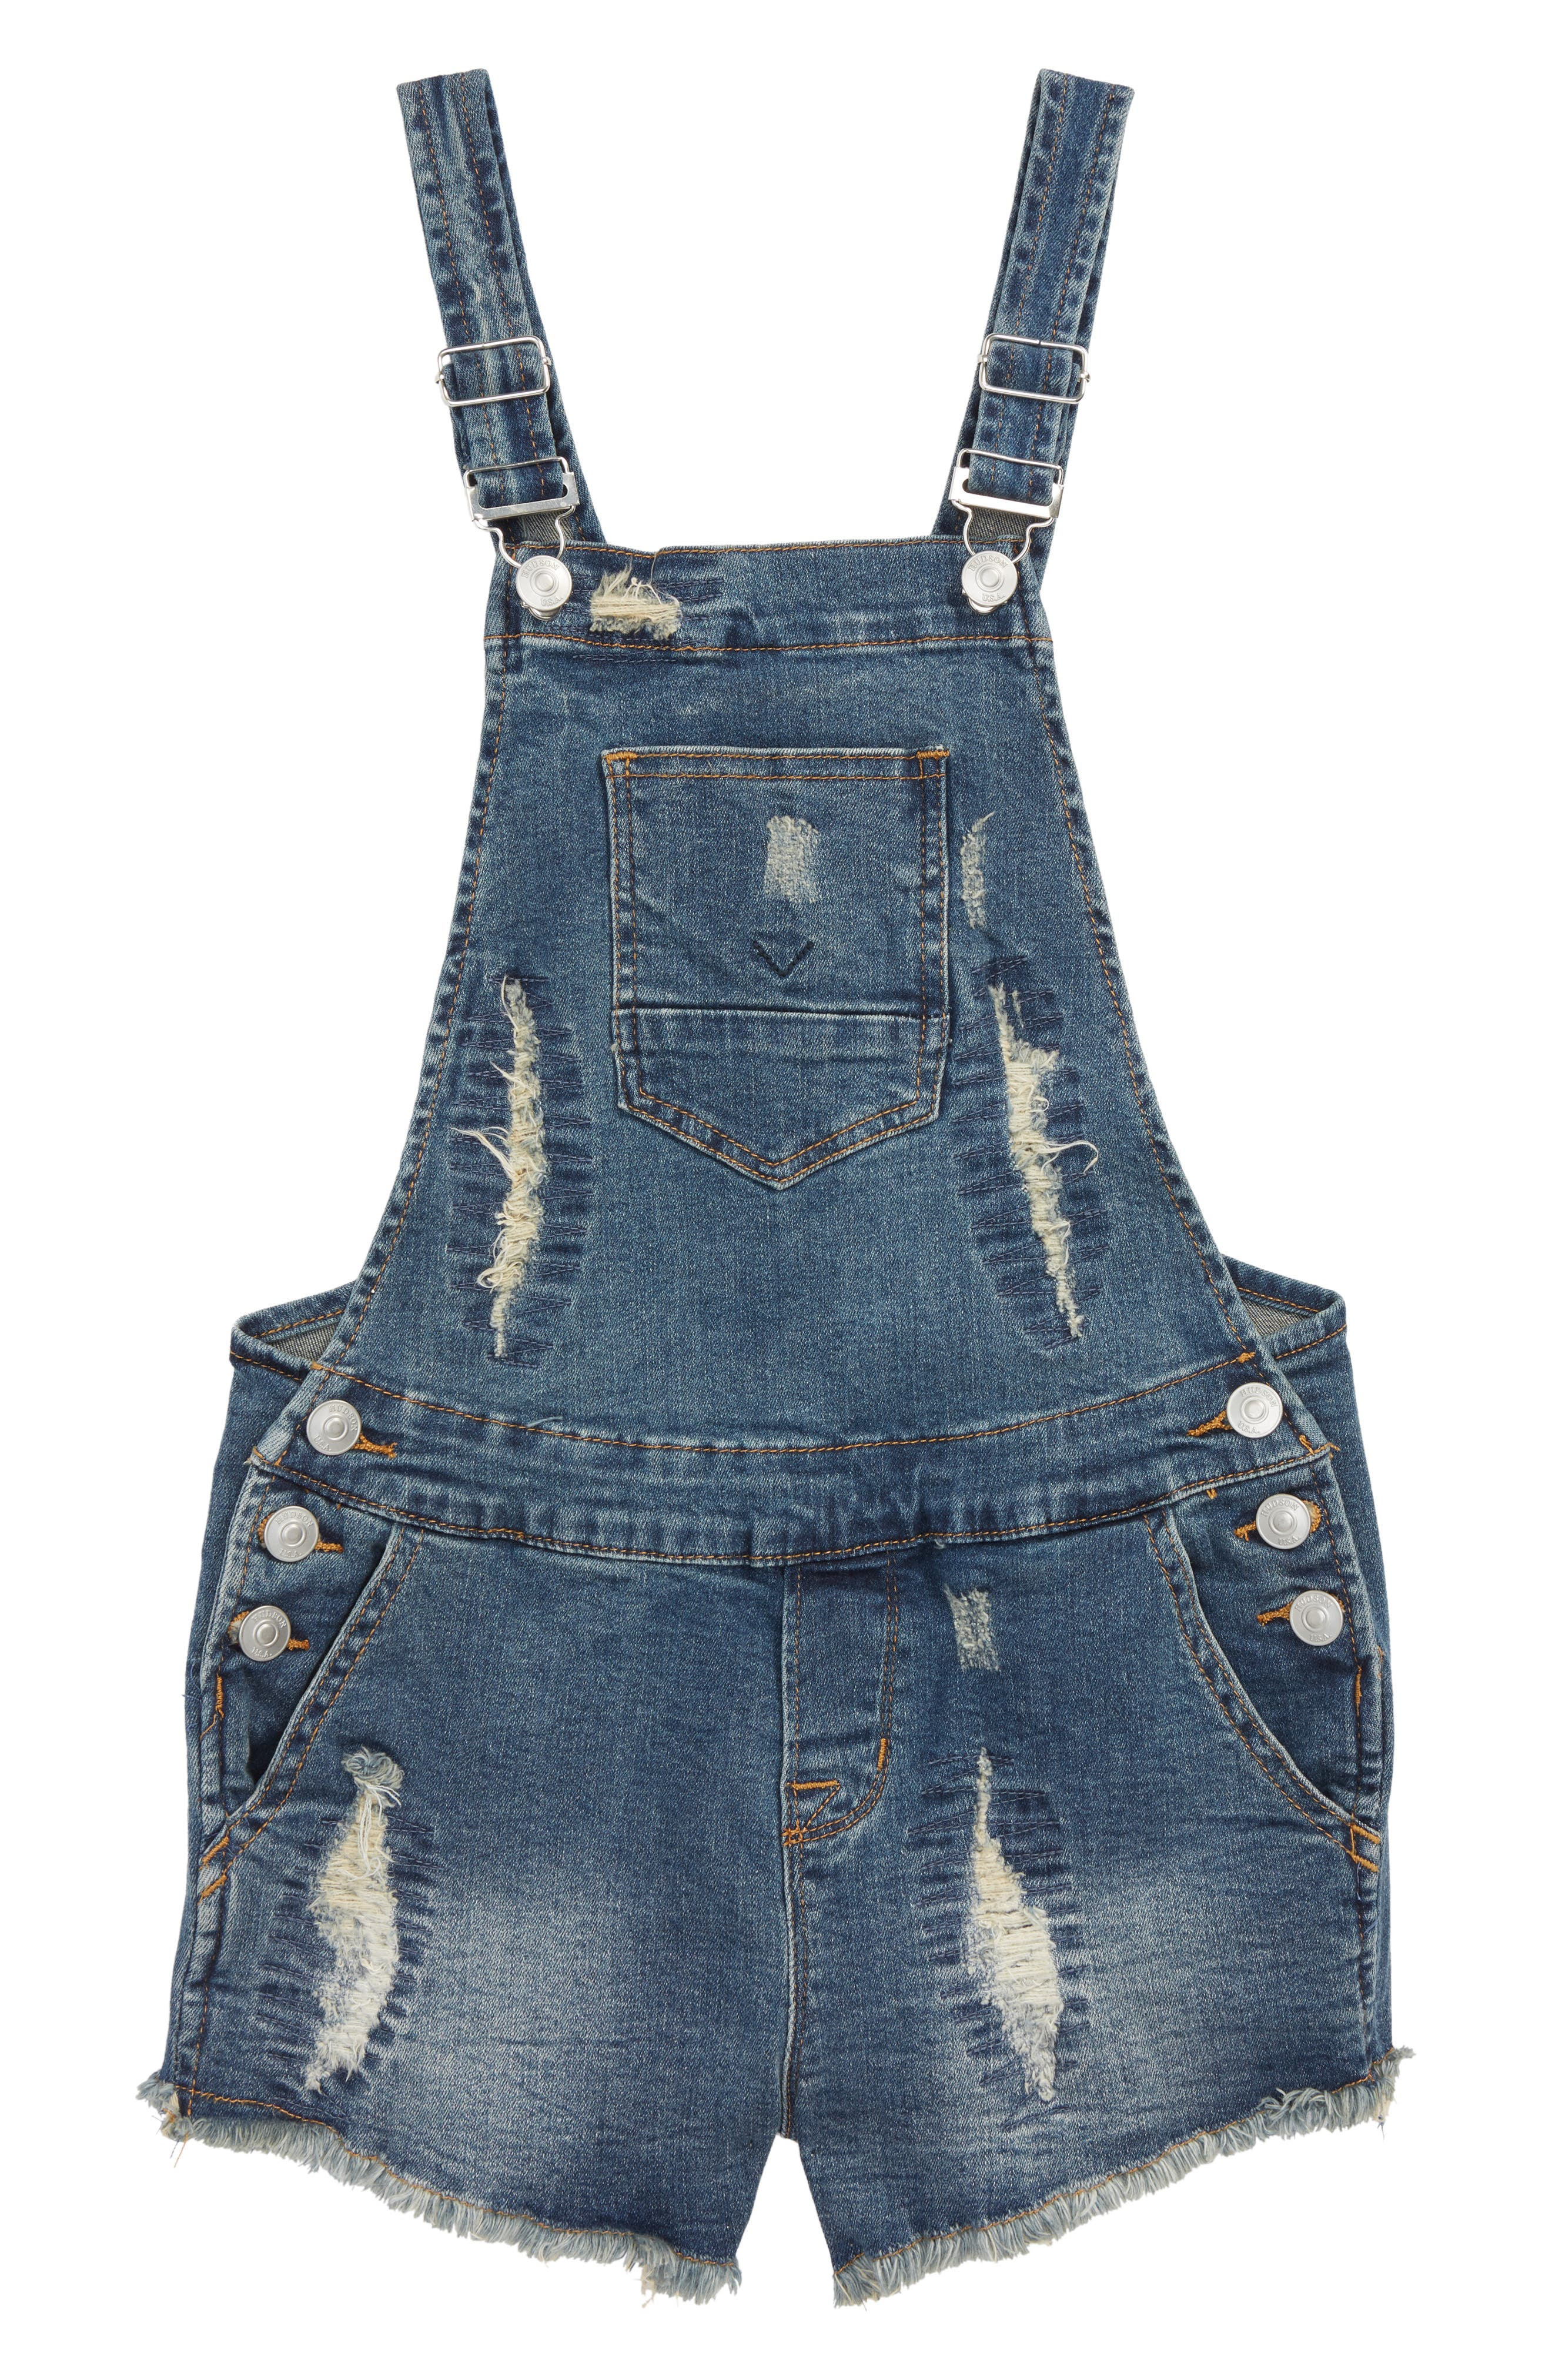 Distressed Short Overalls,                             Main thumbnail 1, color,                             Dsr-Destroyed